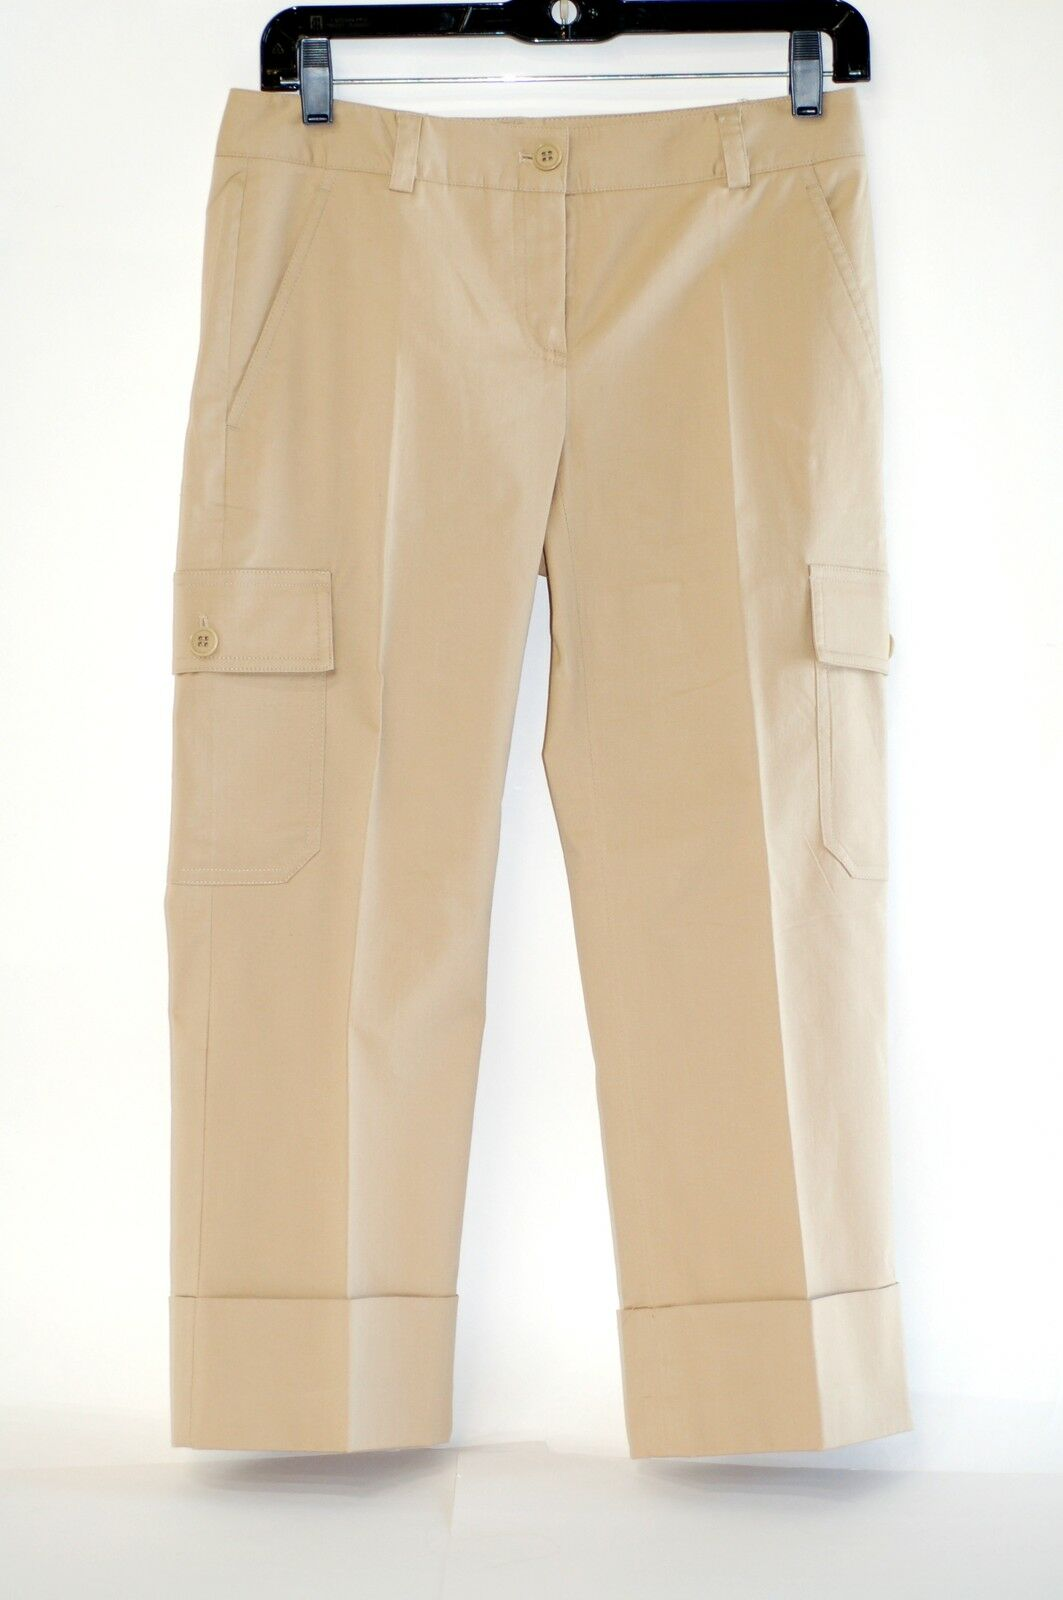 THEORY KHAKI COTTON CARGO CAPRIS SZ 2, EXCELLENT COND, PERFECT FOR SUMMER